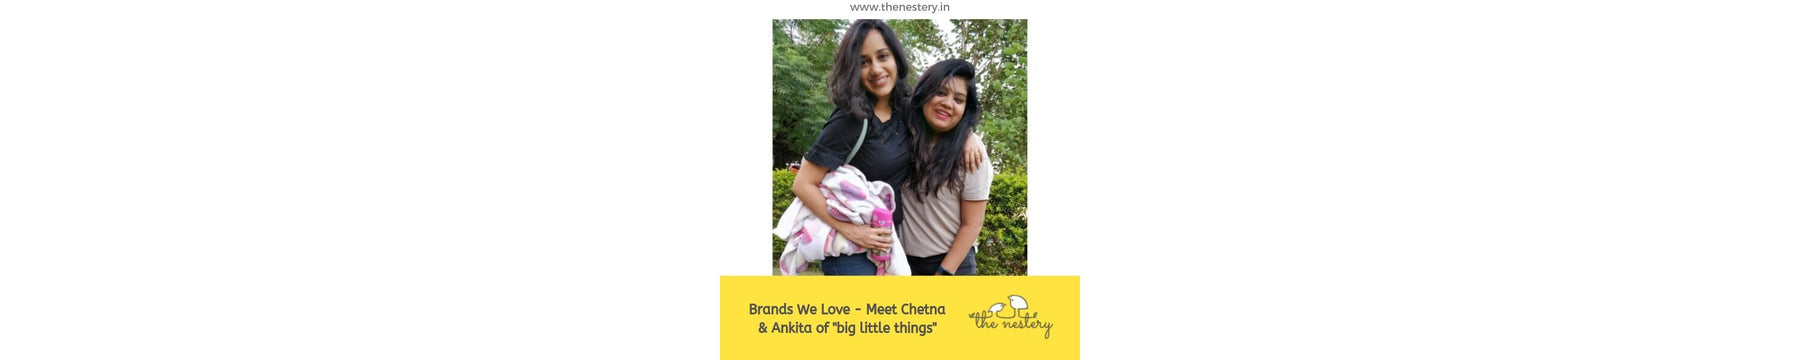 "Brands We Love - Meet Chetna and Ankita of ""big little things"""